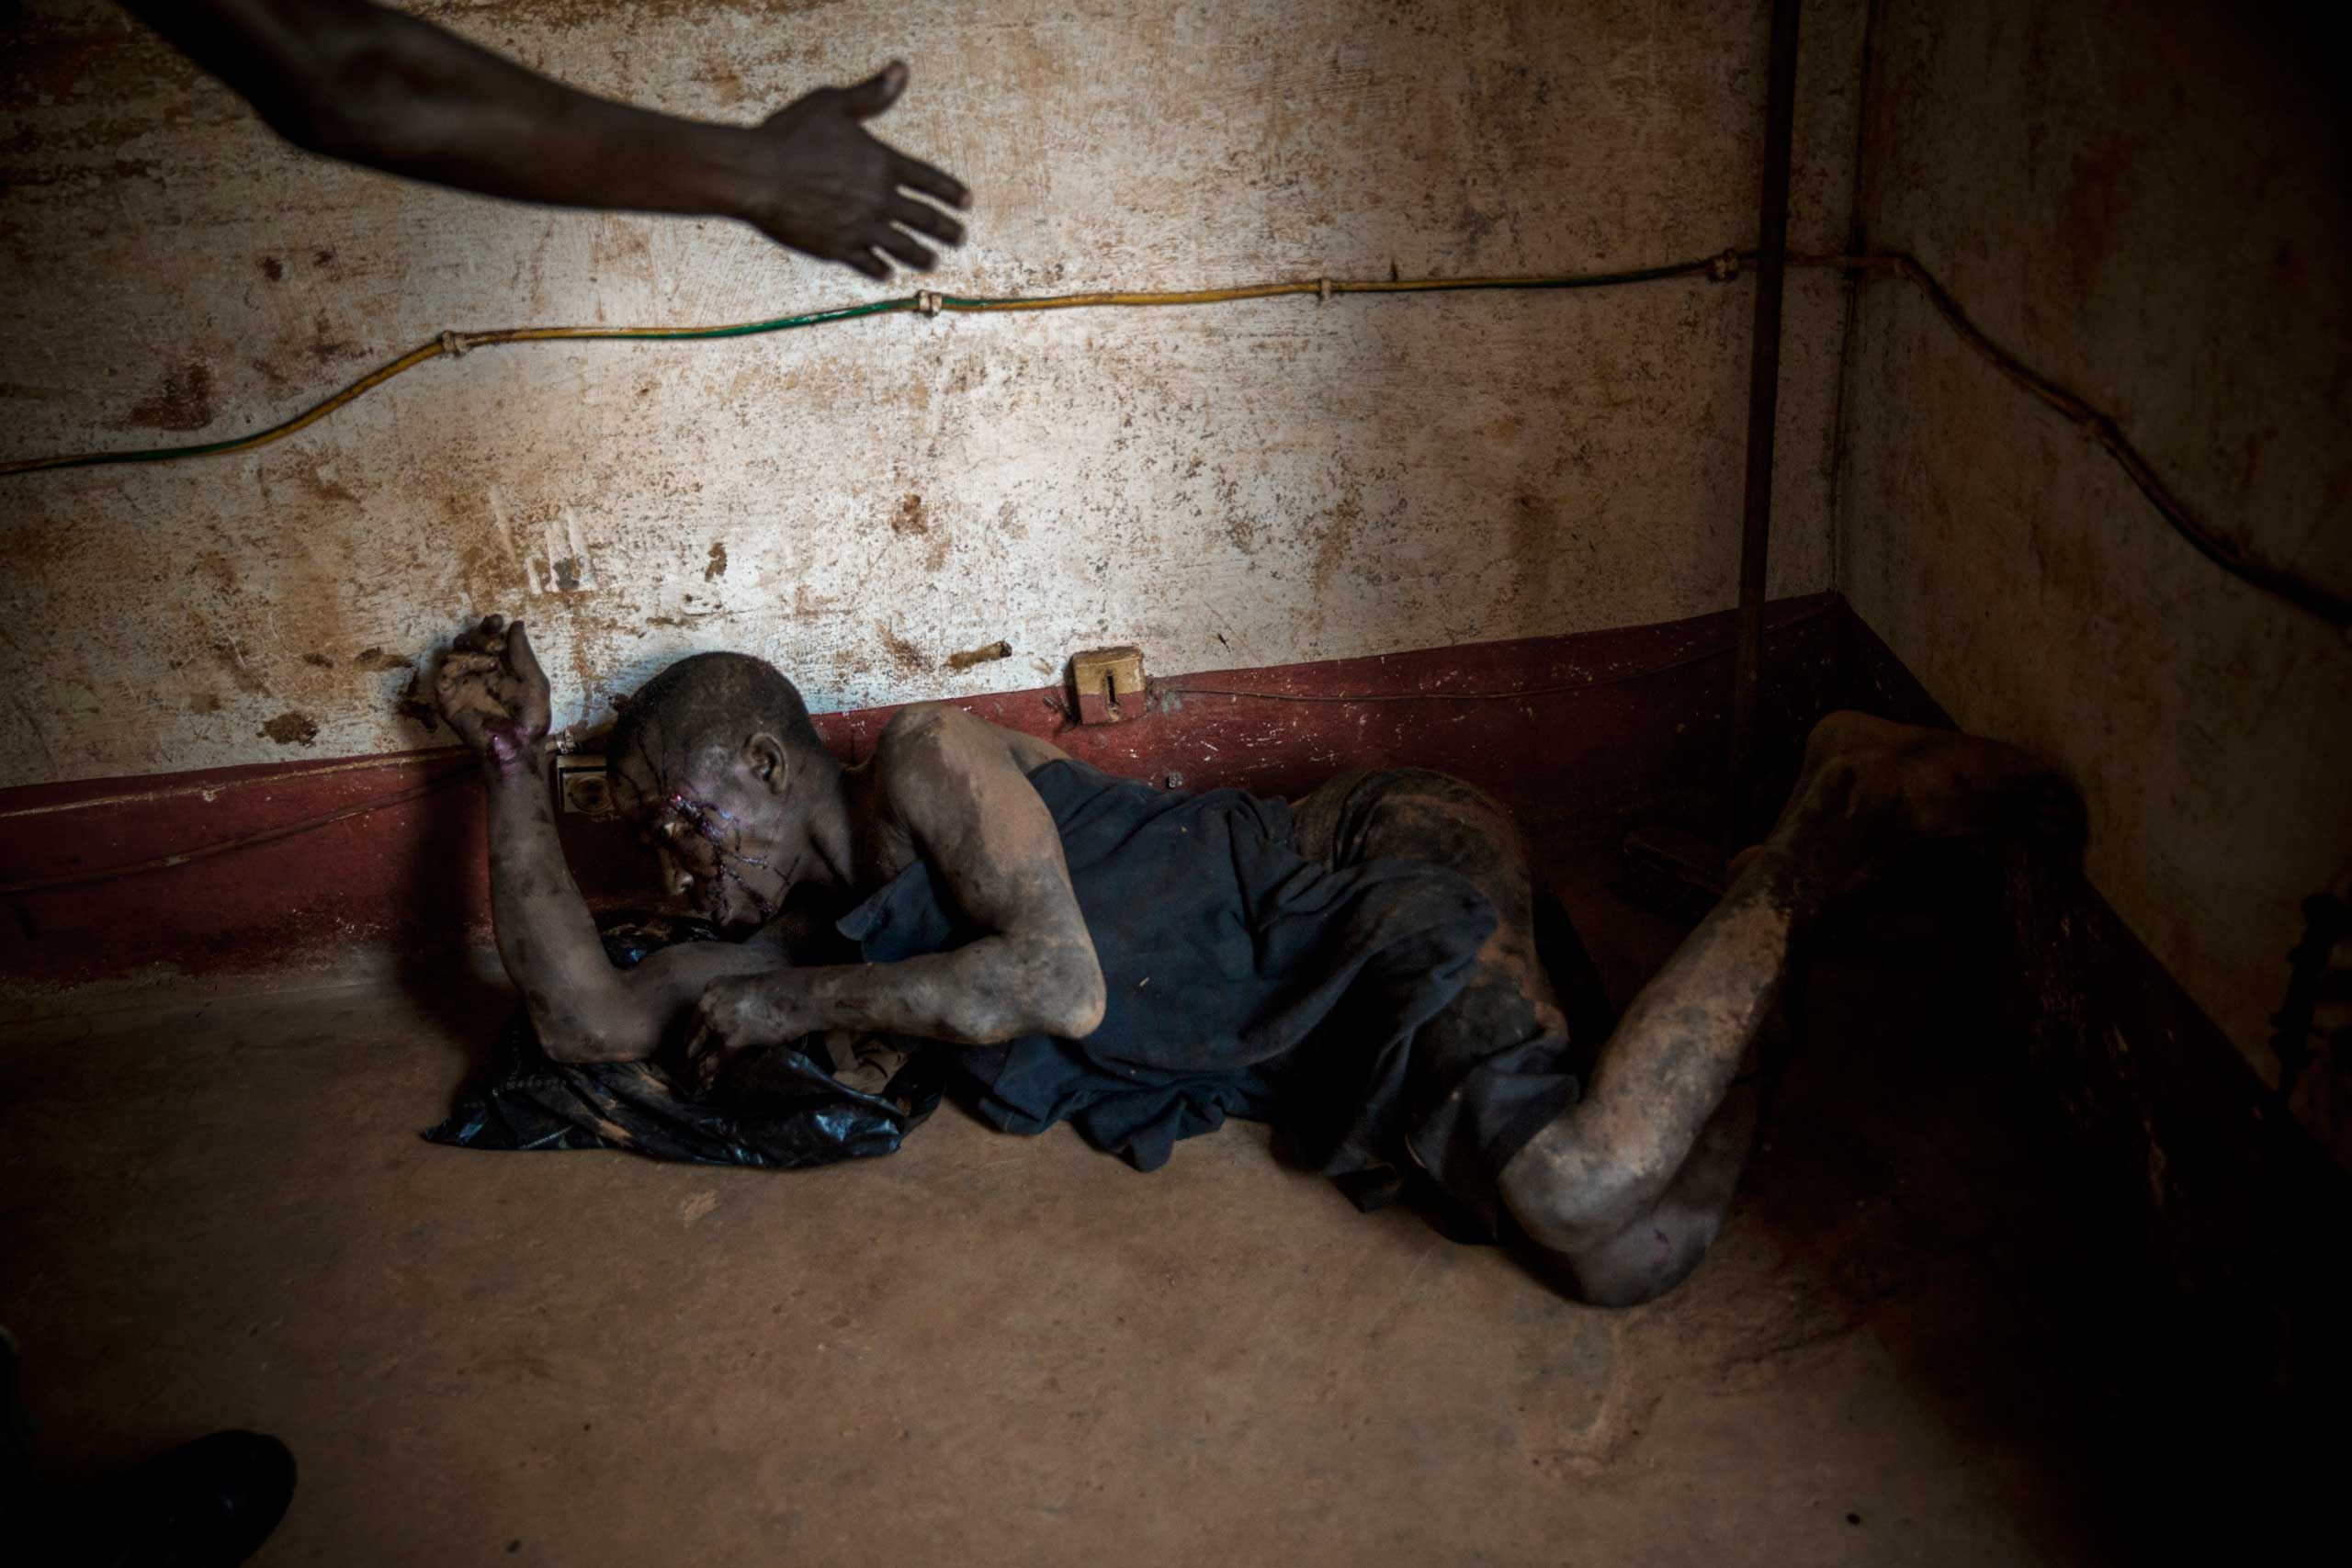 A man accused of robbery is detained at the police station and was about to be killed. Bangui,  Central African Republic. April 18, 2014.